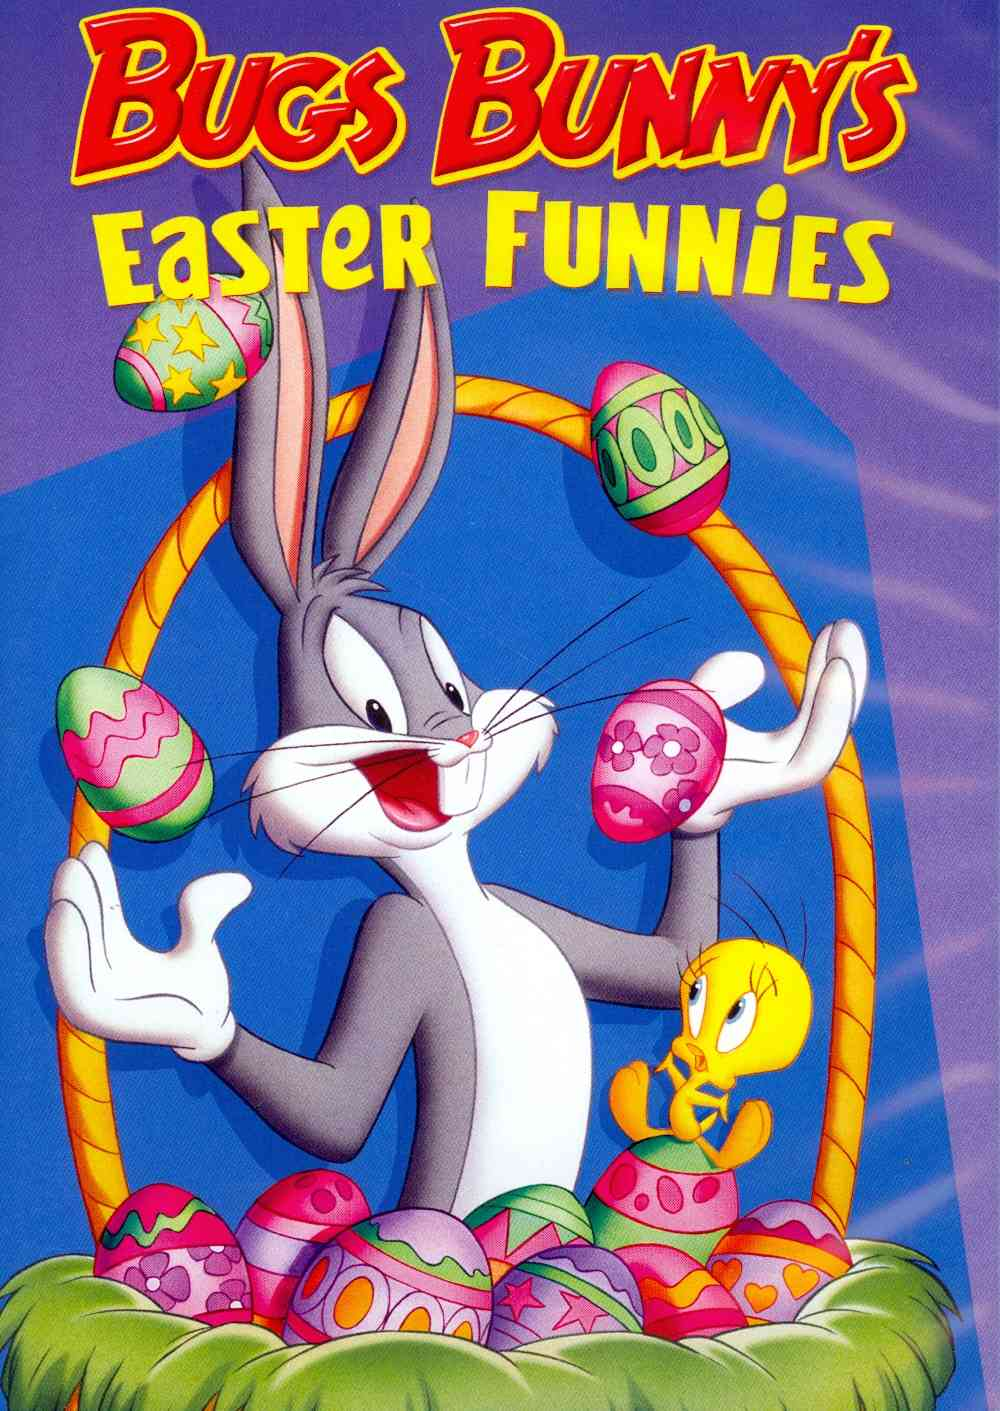 BUGS BUNNY'S EASTER FUNNIES BY LOONEY TUNES (DVD)